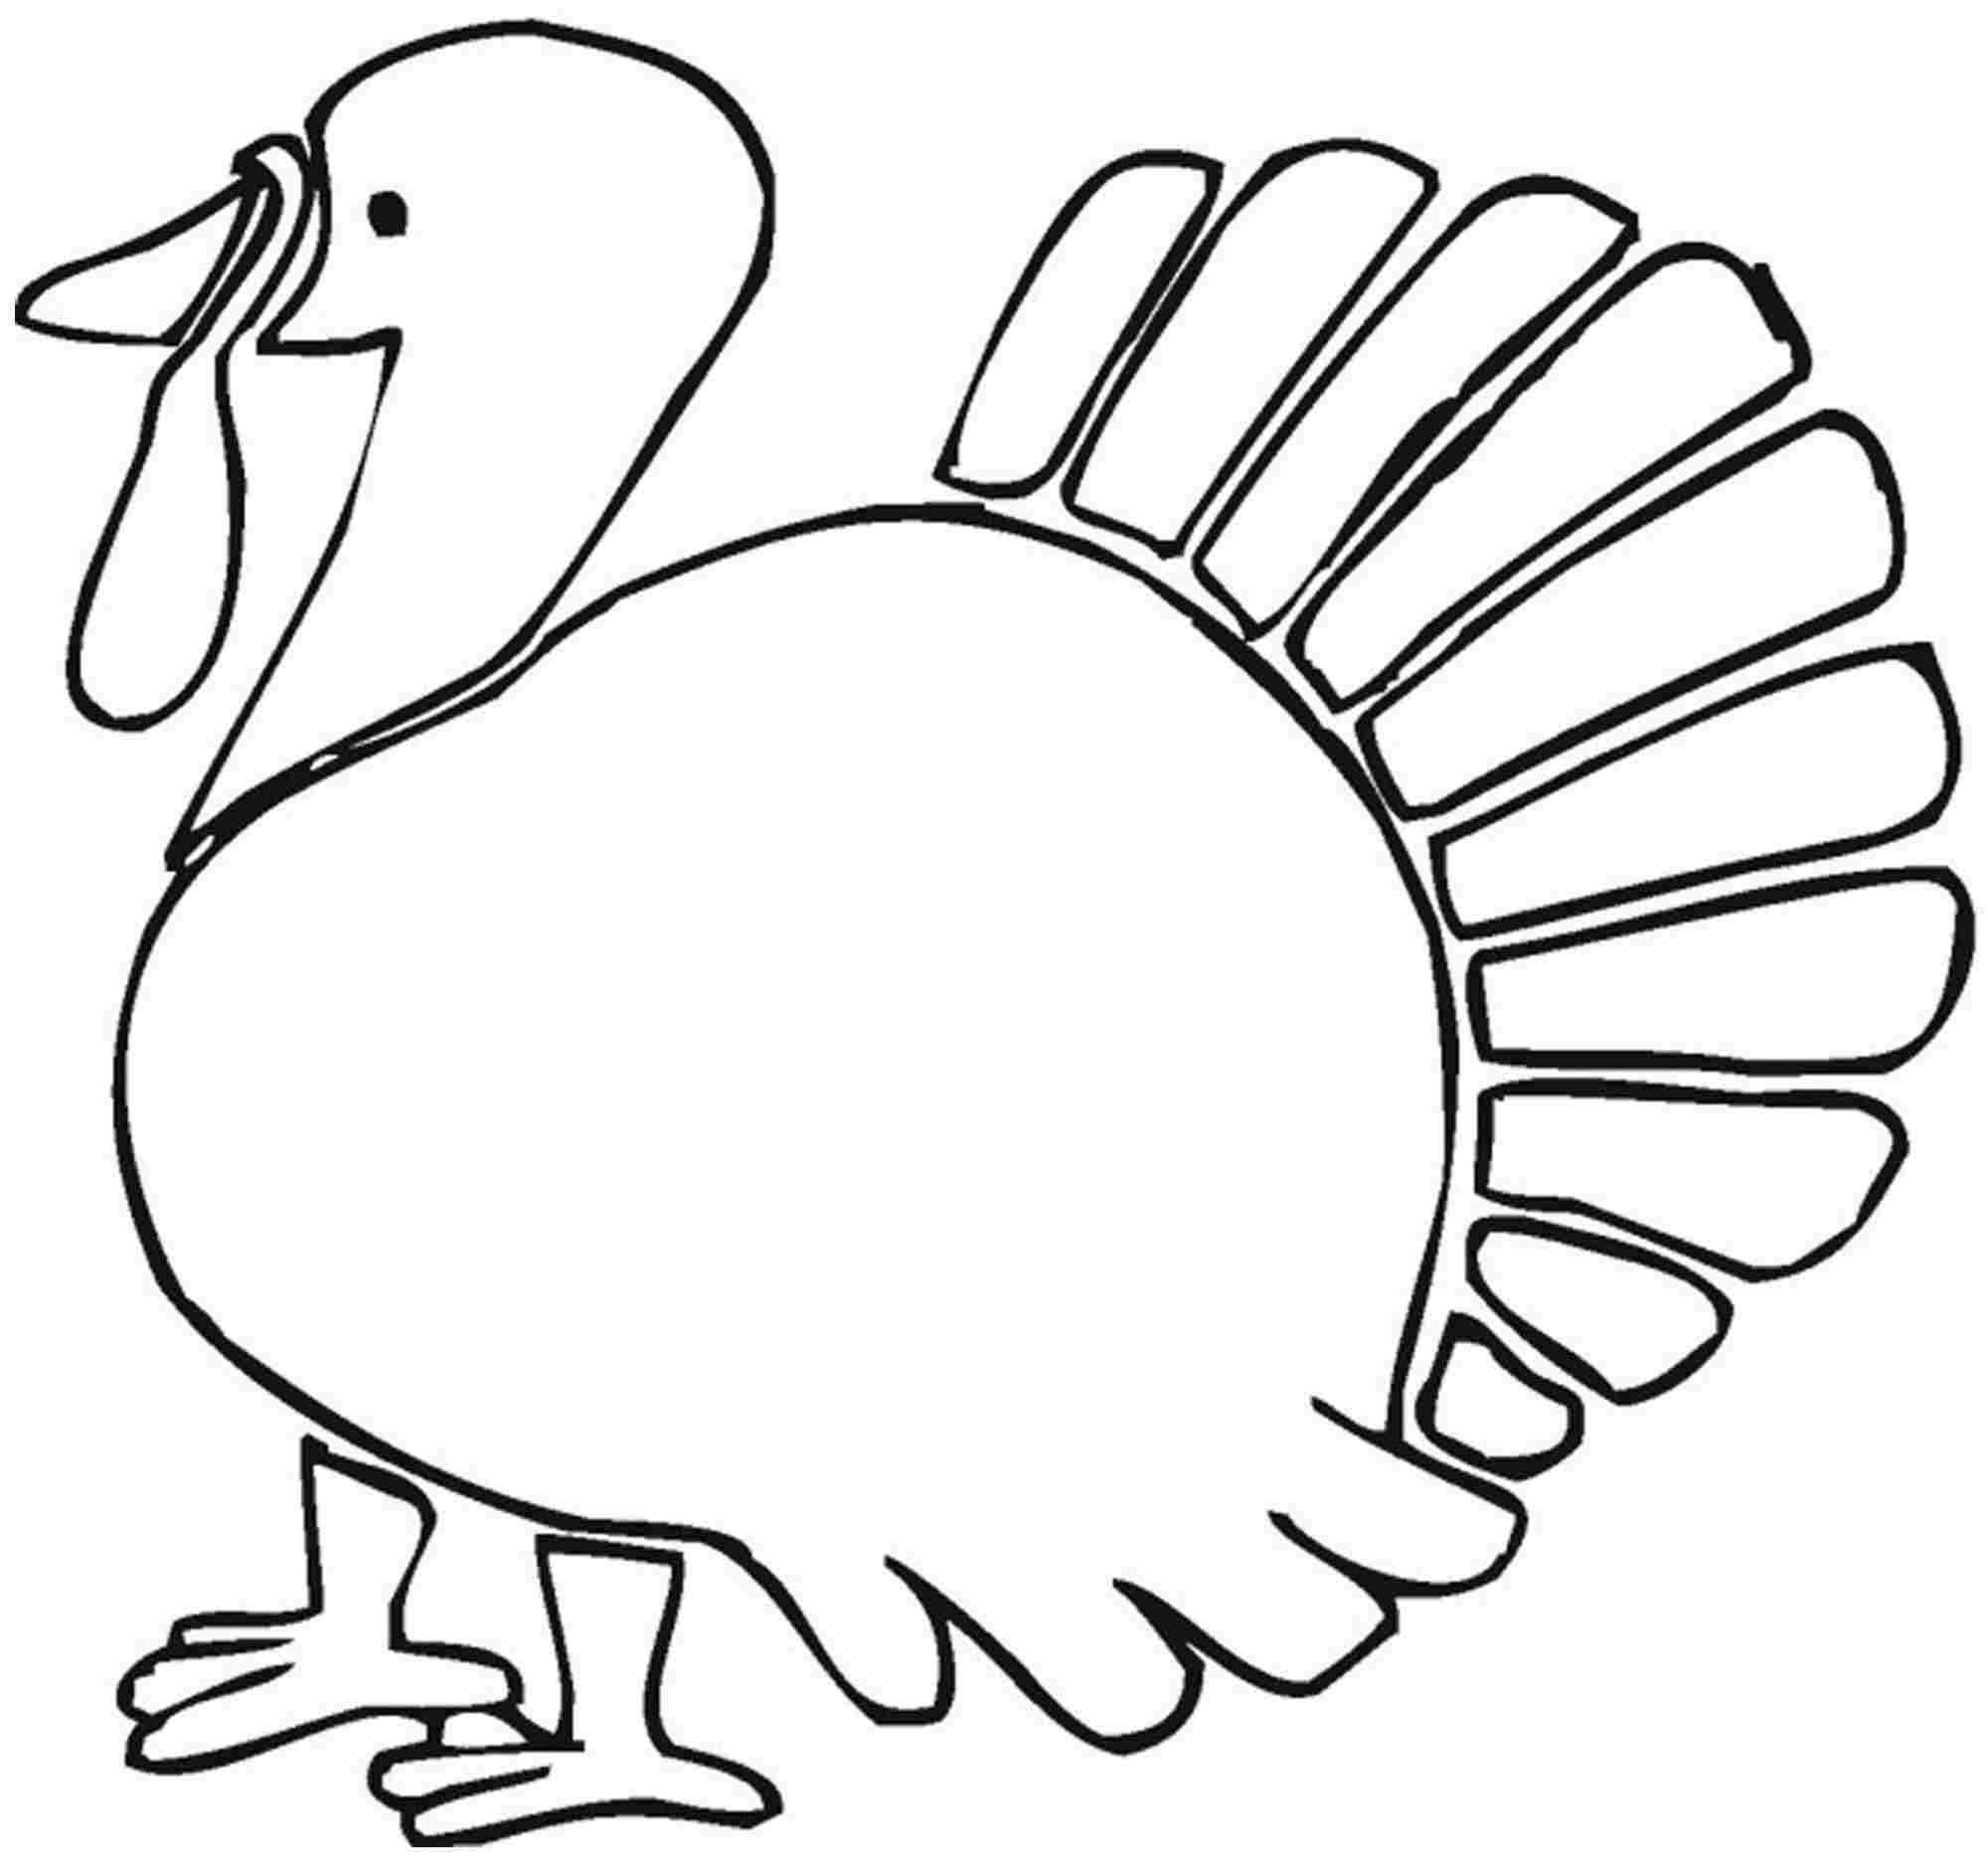 Turkey Coloring Pages For Kindergarten : Turkey coloring pages printable for preschool home